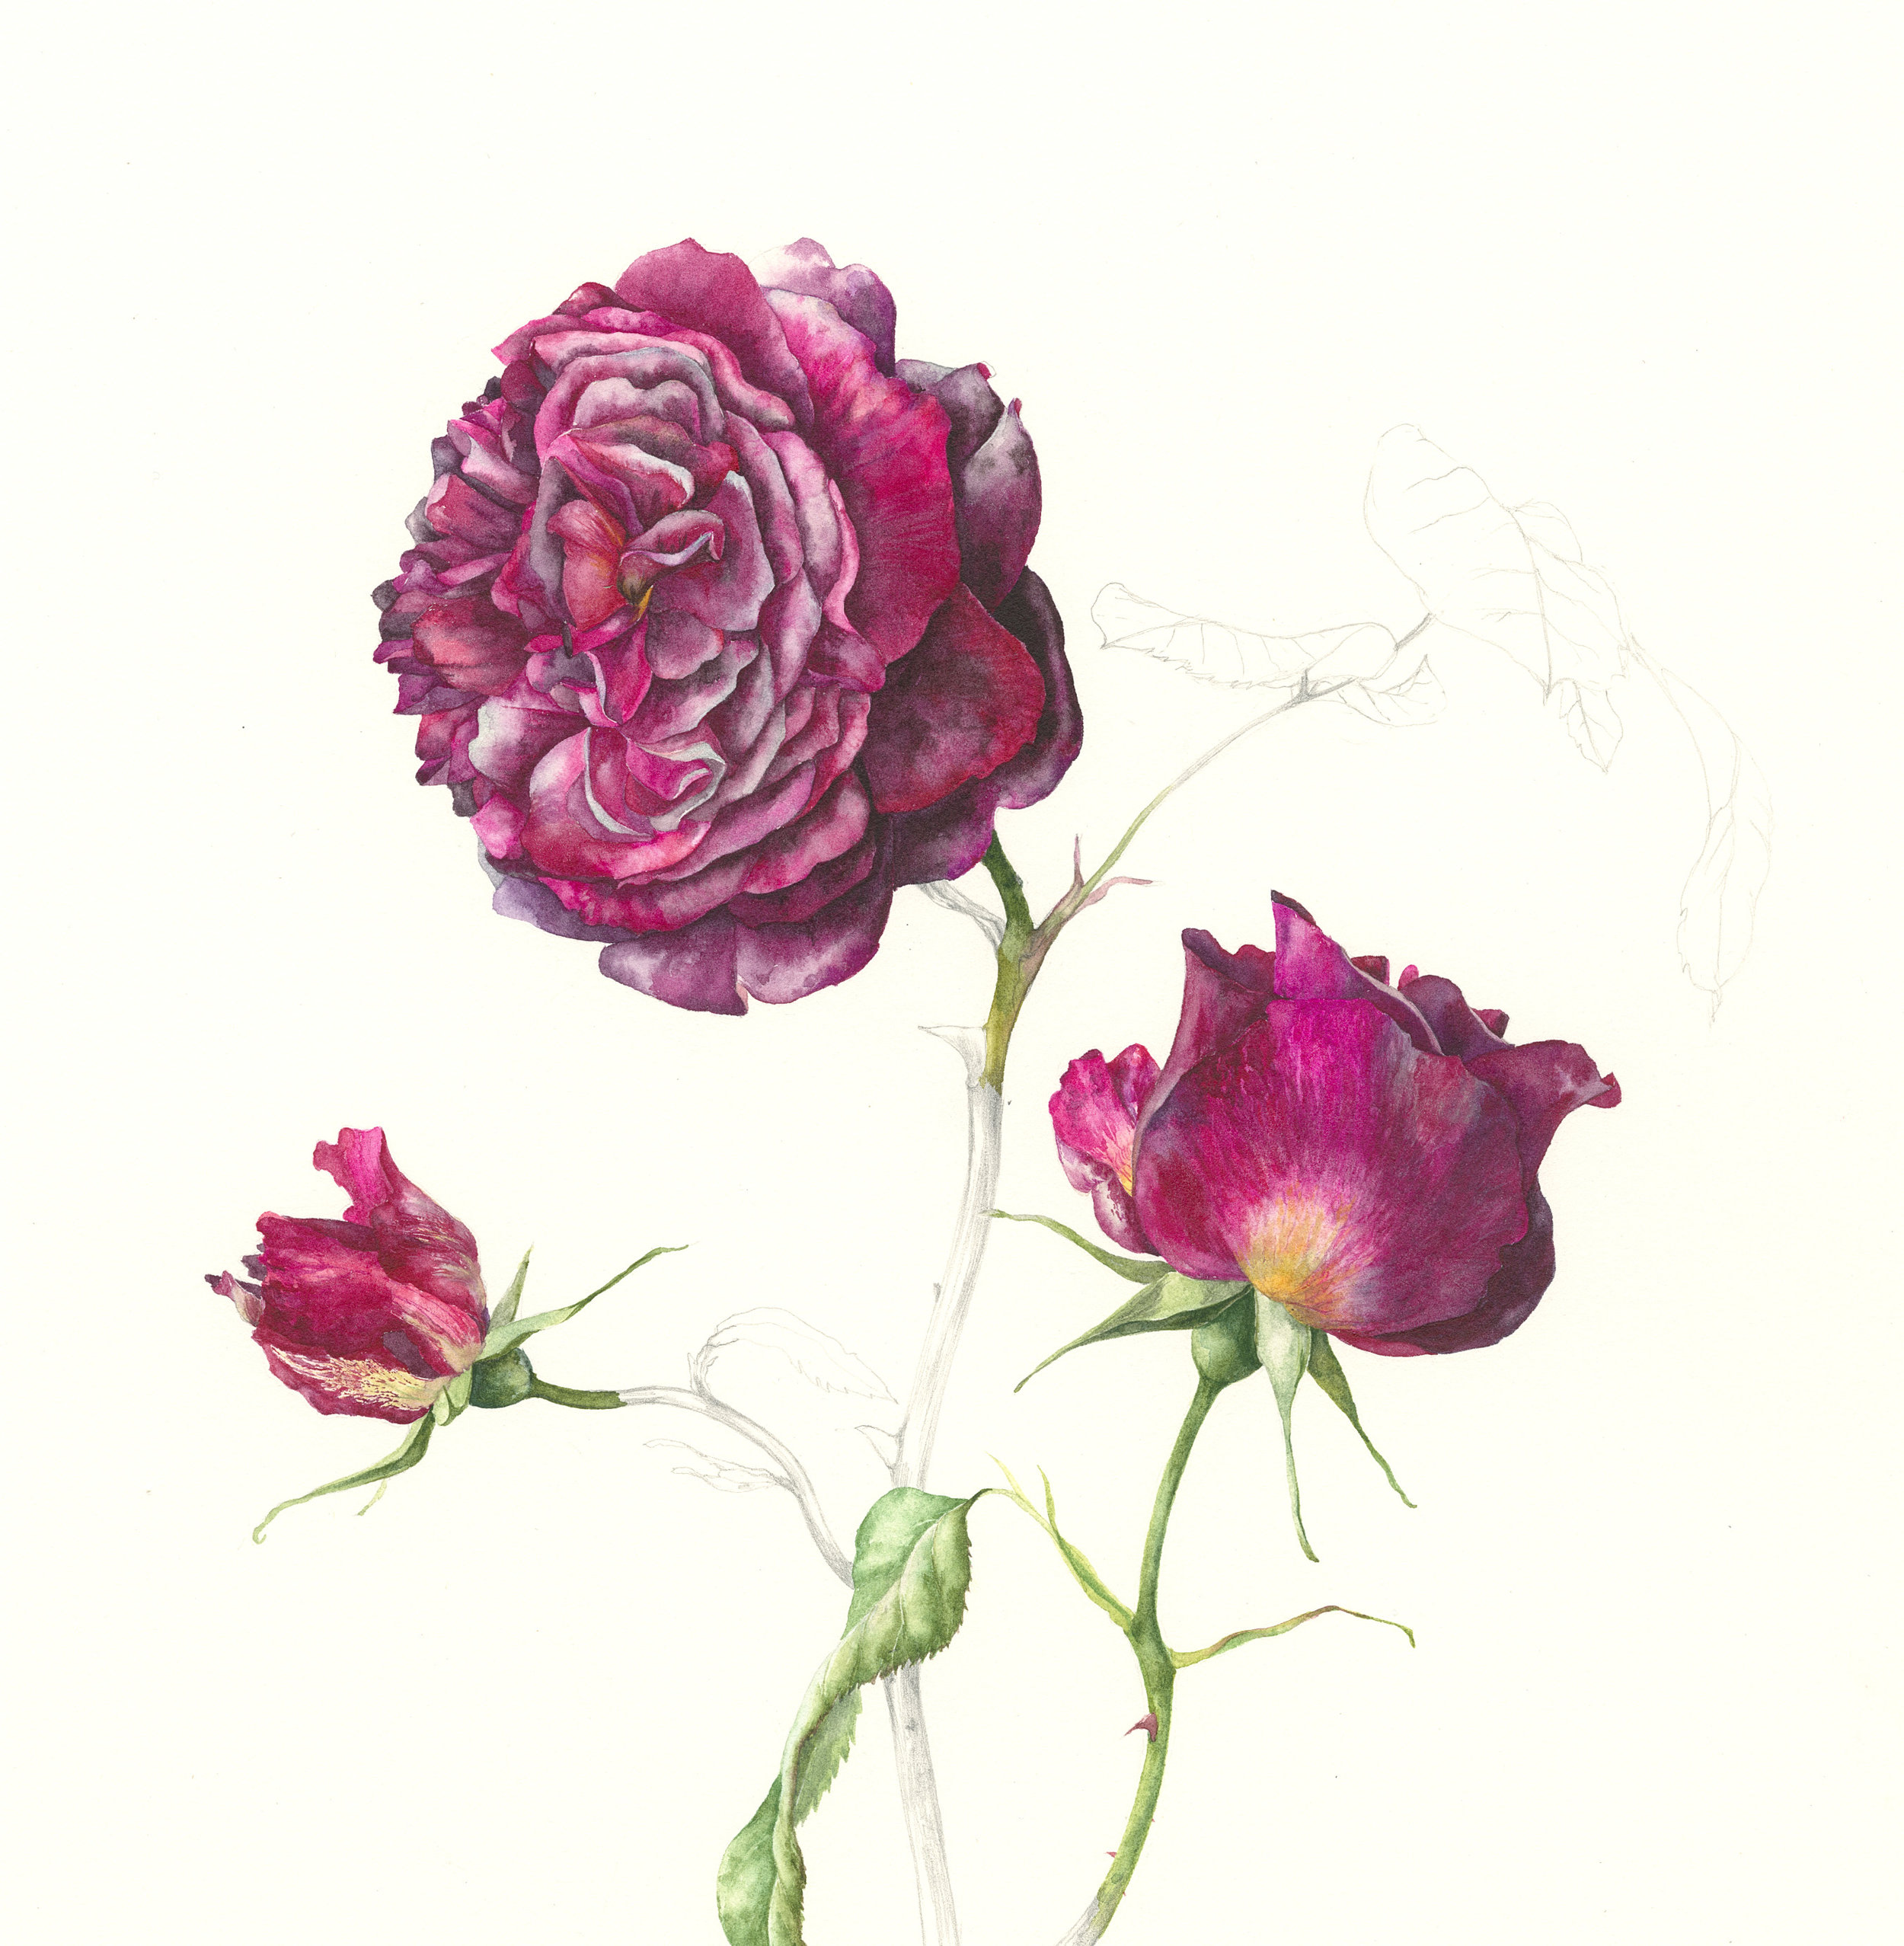 Rosa Munstead Wood  watercolour on paper  24 x 24 cm image  47 x 47 cm framed  SOLD